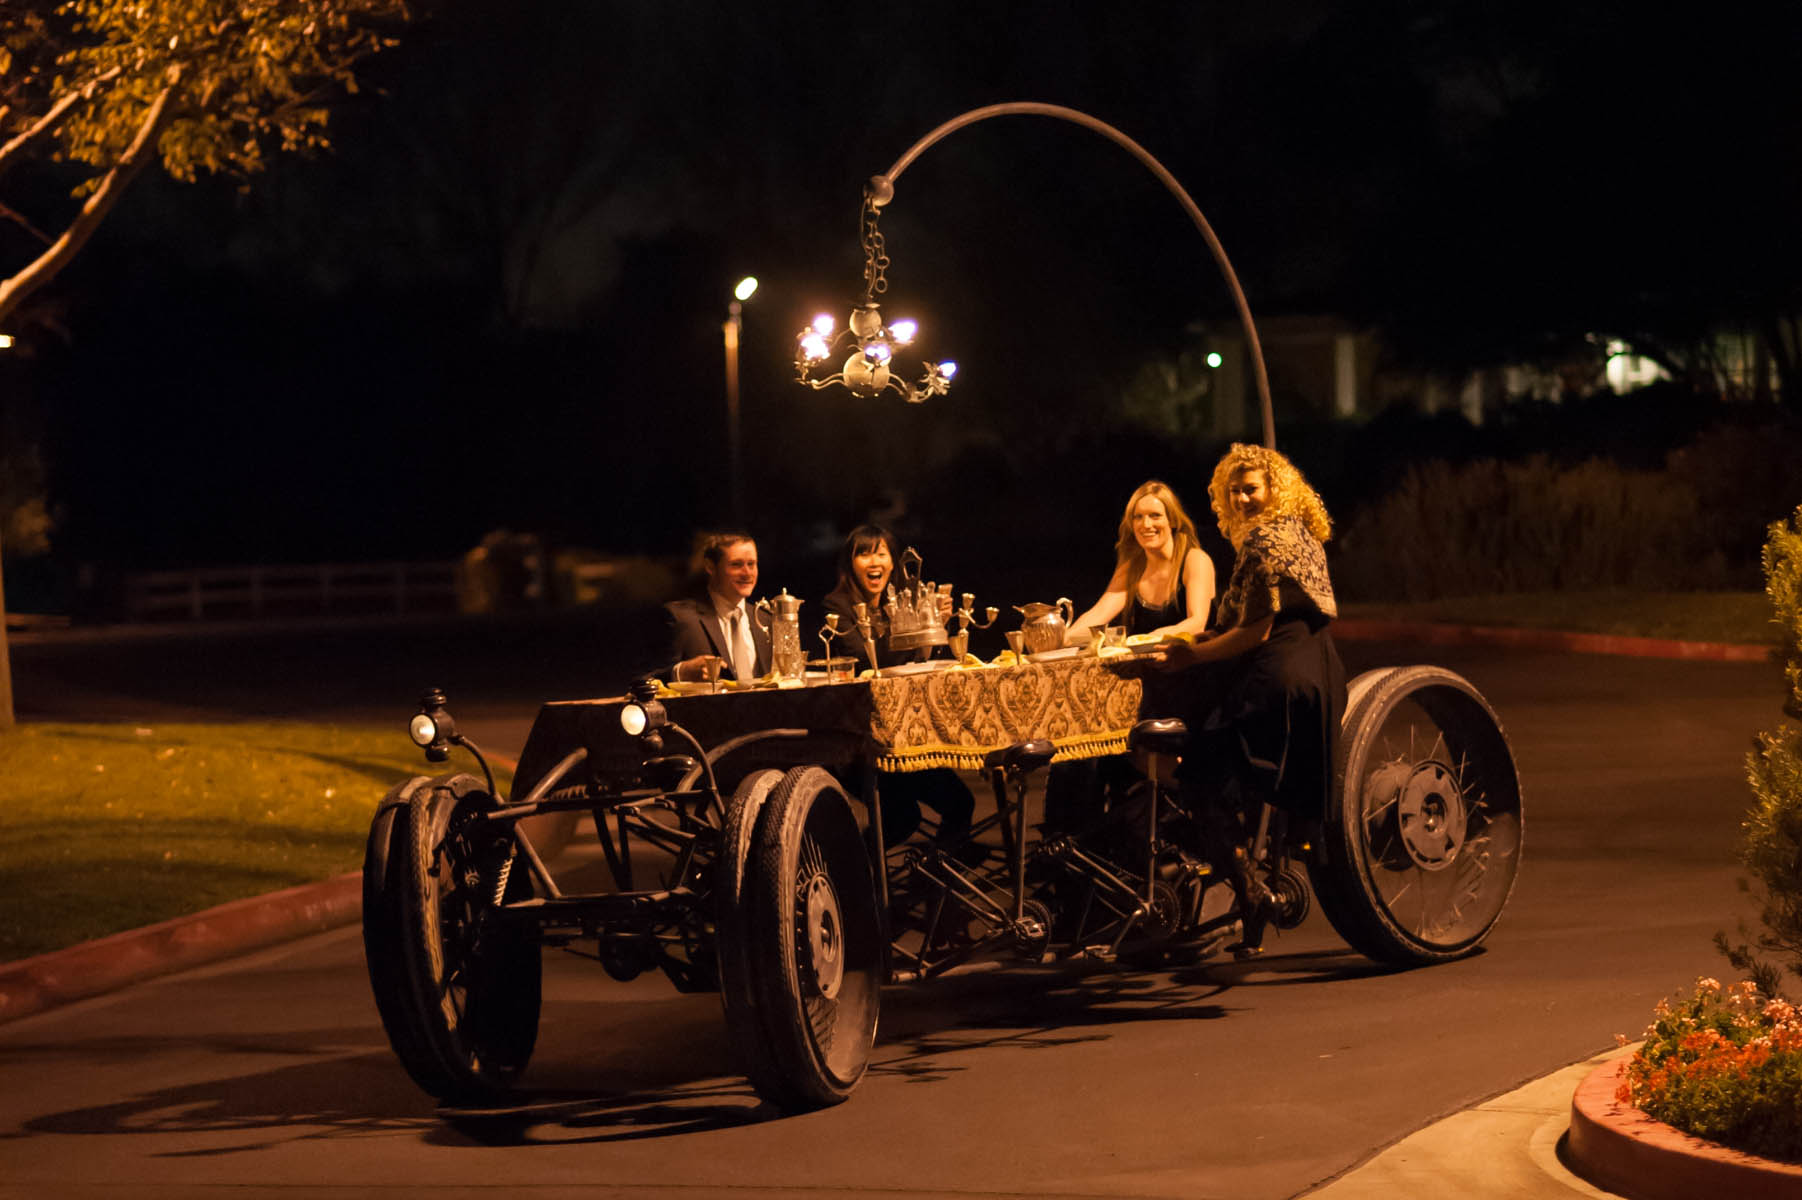 Best wedding dinner table ever! This is the Moveable Feast, a street legal moving dinner table/kinetic sculpture created by the groom!